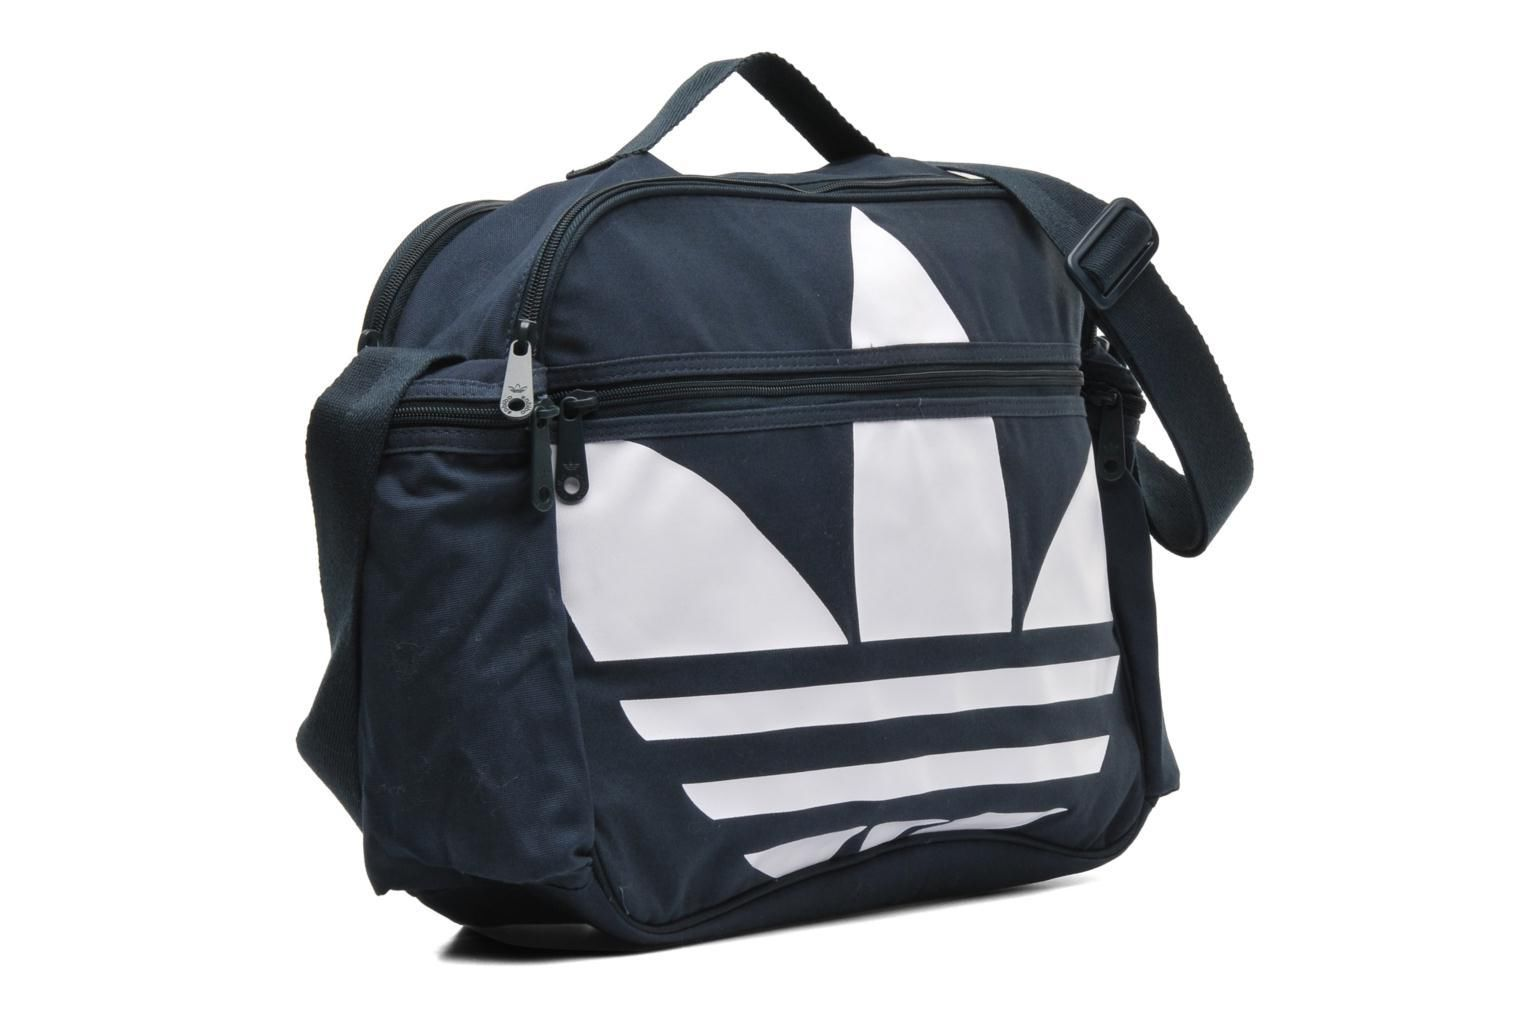 adidas messenger bag chrome citizen messenger bag laptop messenger bag